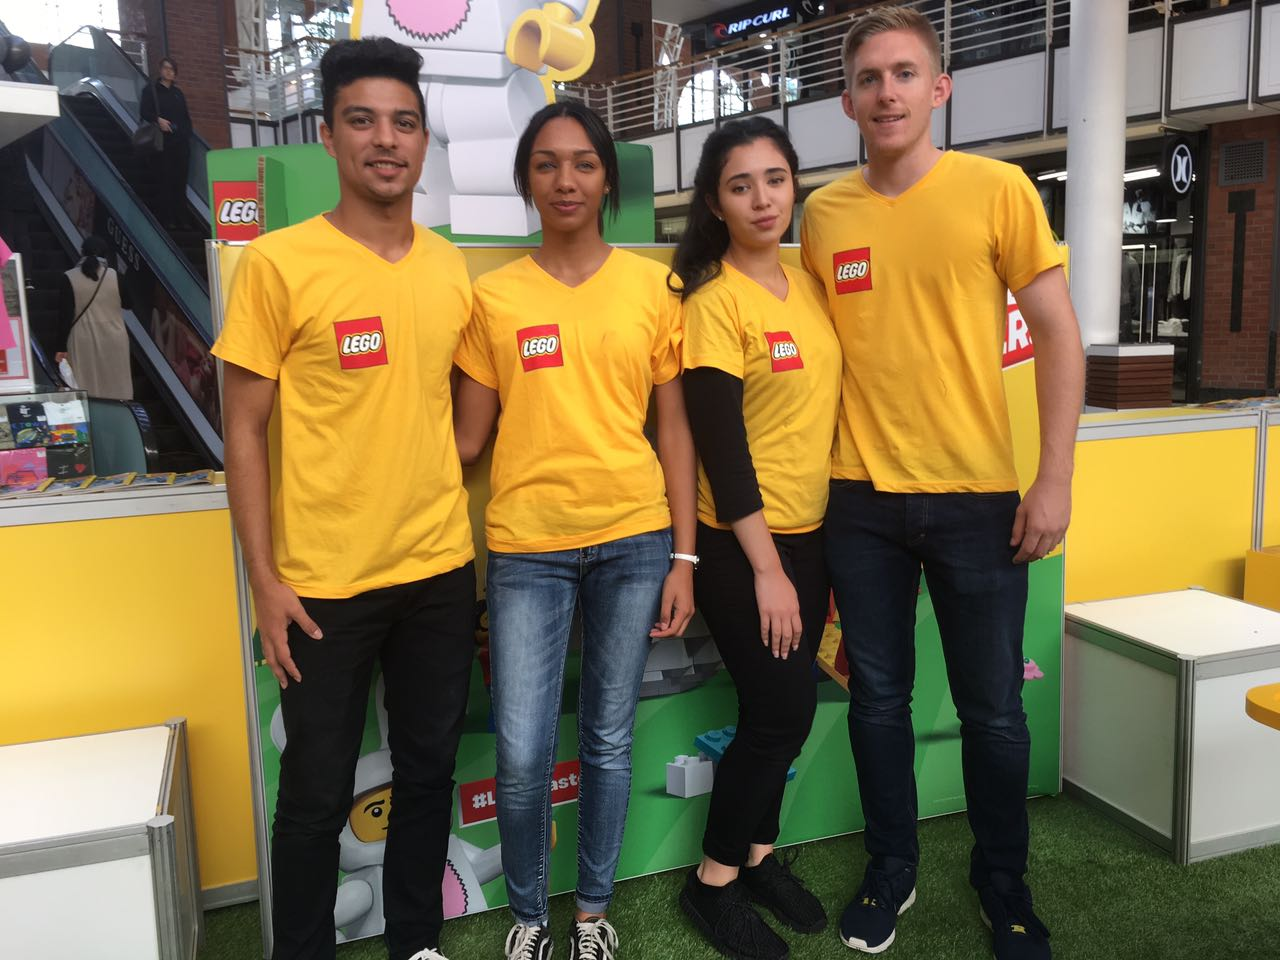 Lego activation staff